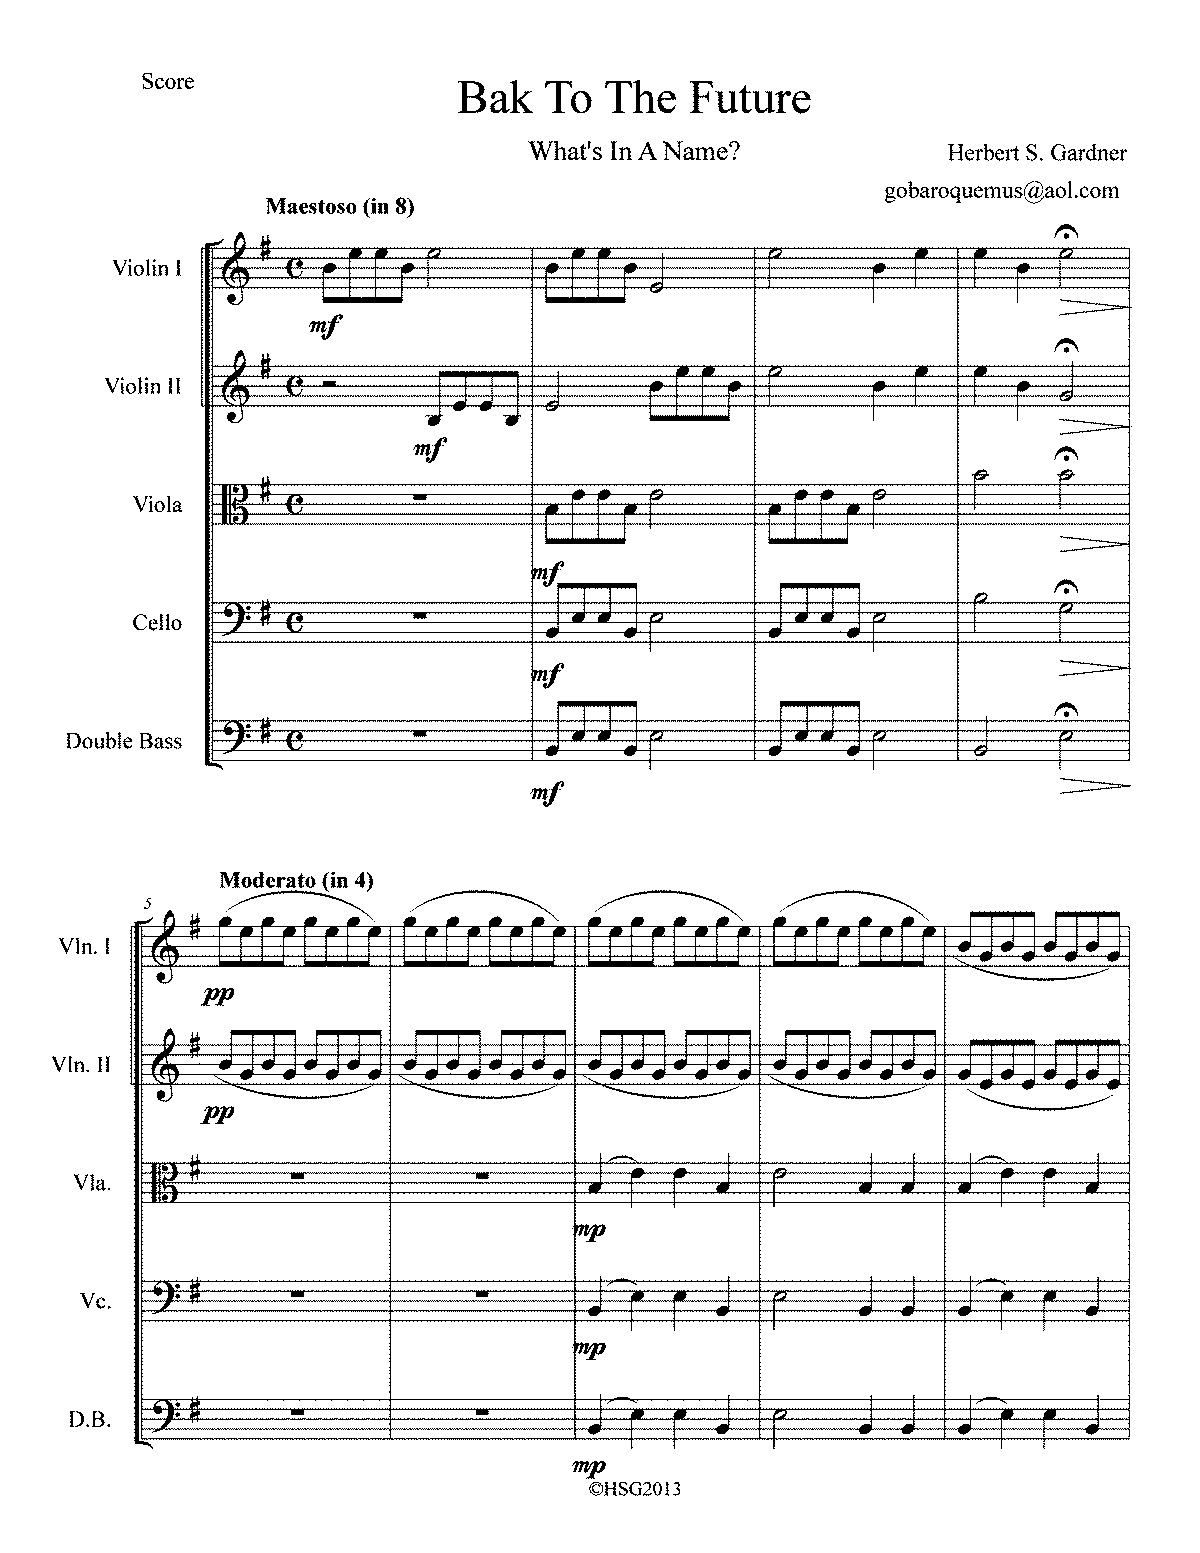 PMLP672933-Bak to the future - Score.pdf